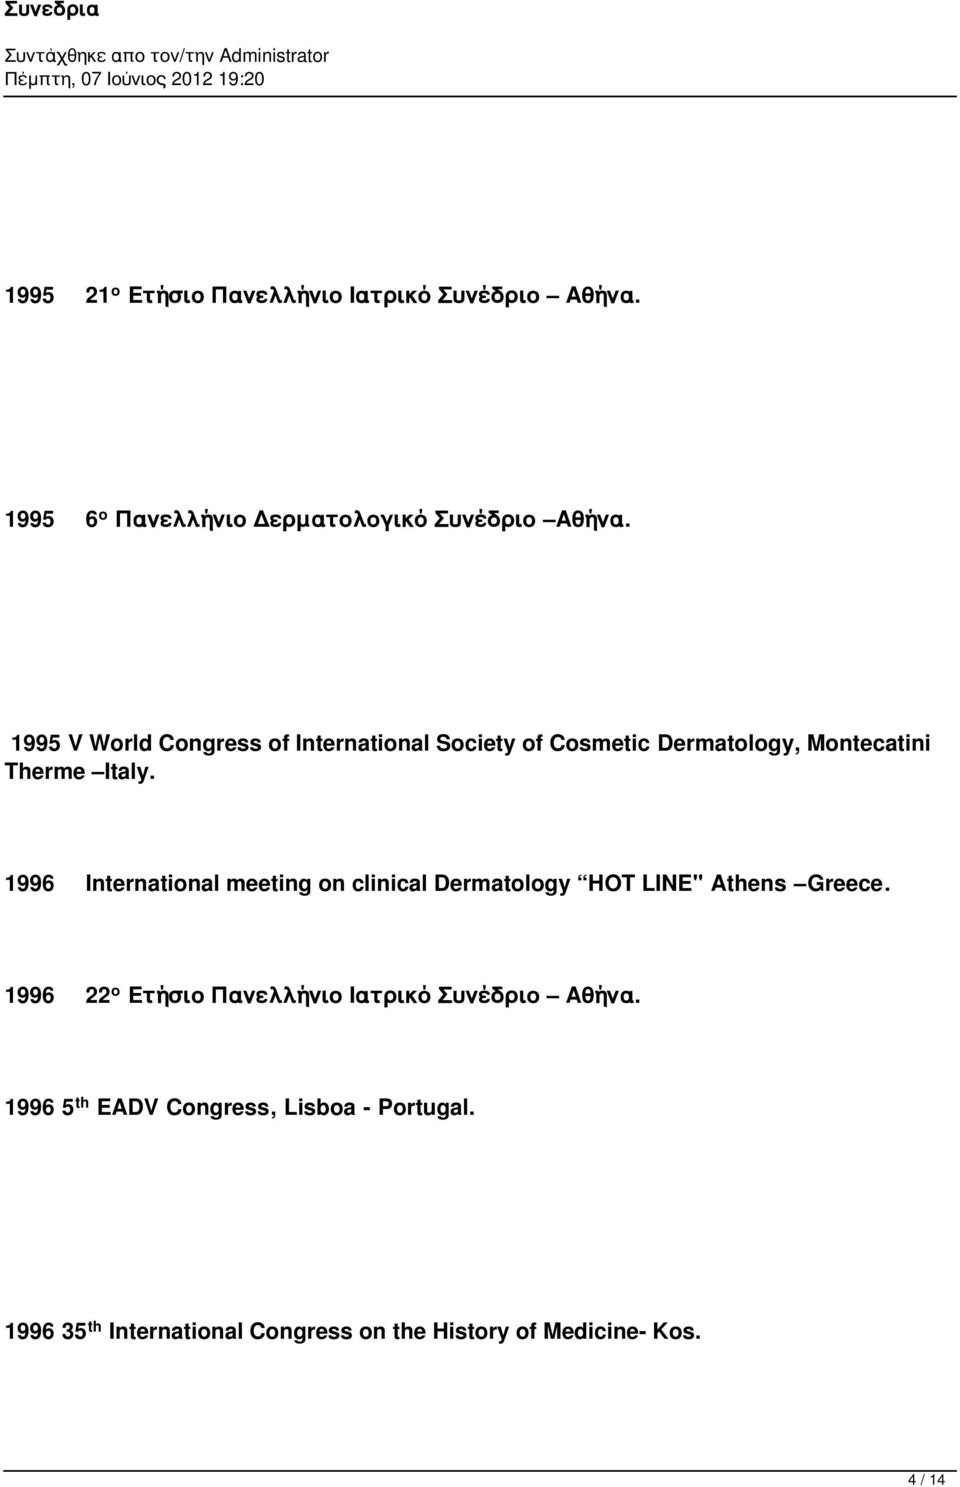 "1996 International meeting on clinical Dermatology HOT LINE"" Athens Greece."